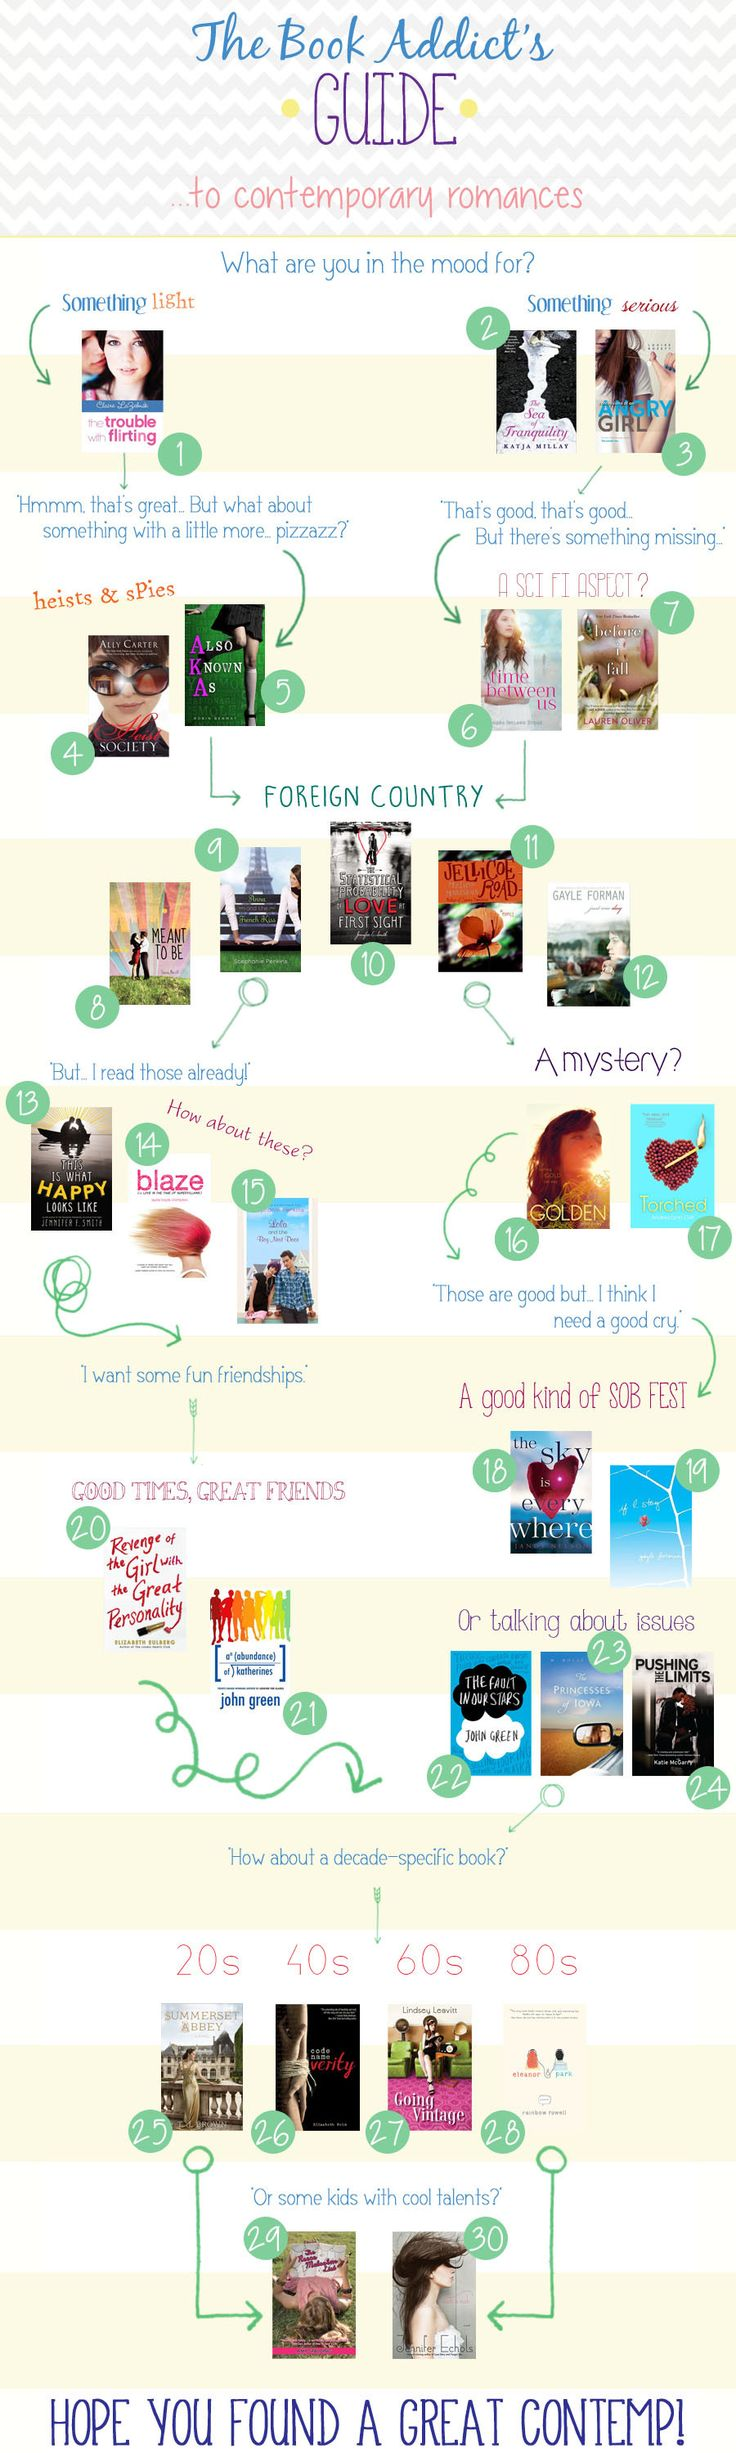 Guide to YA contemporary romances from http://www.bookaddictsguide.com/ | Note from BCPL: Not all of these are necessarily romances—or even contemporaries